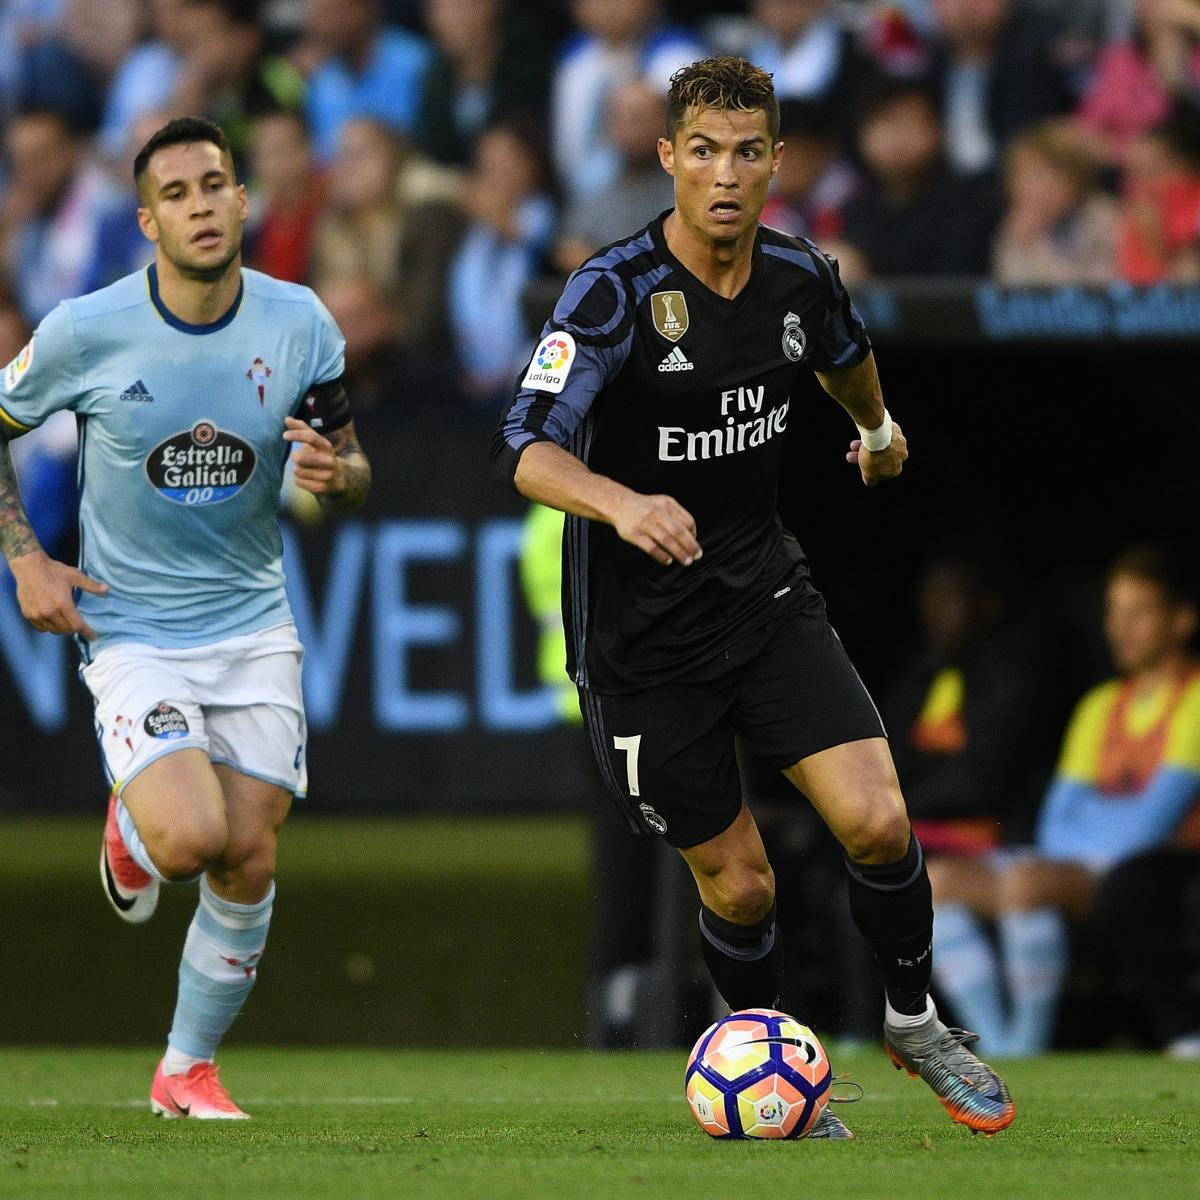 Barcelona Vs Celta Vigo In Youtube: Celta Vigo Vs. Real Madrid: Team News, Preview, Live